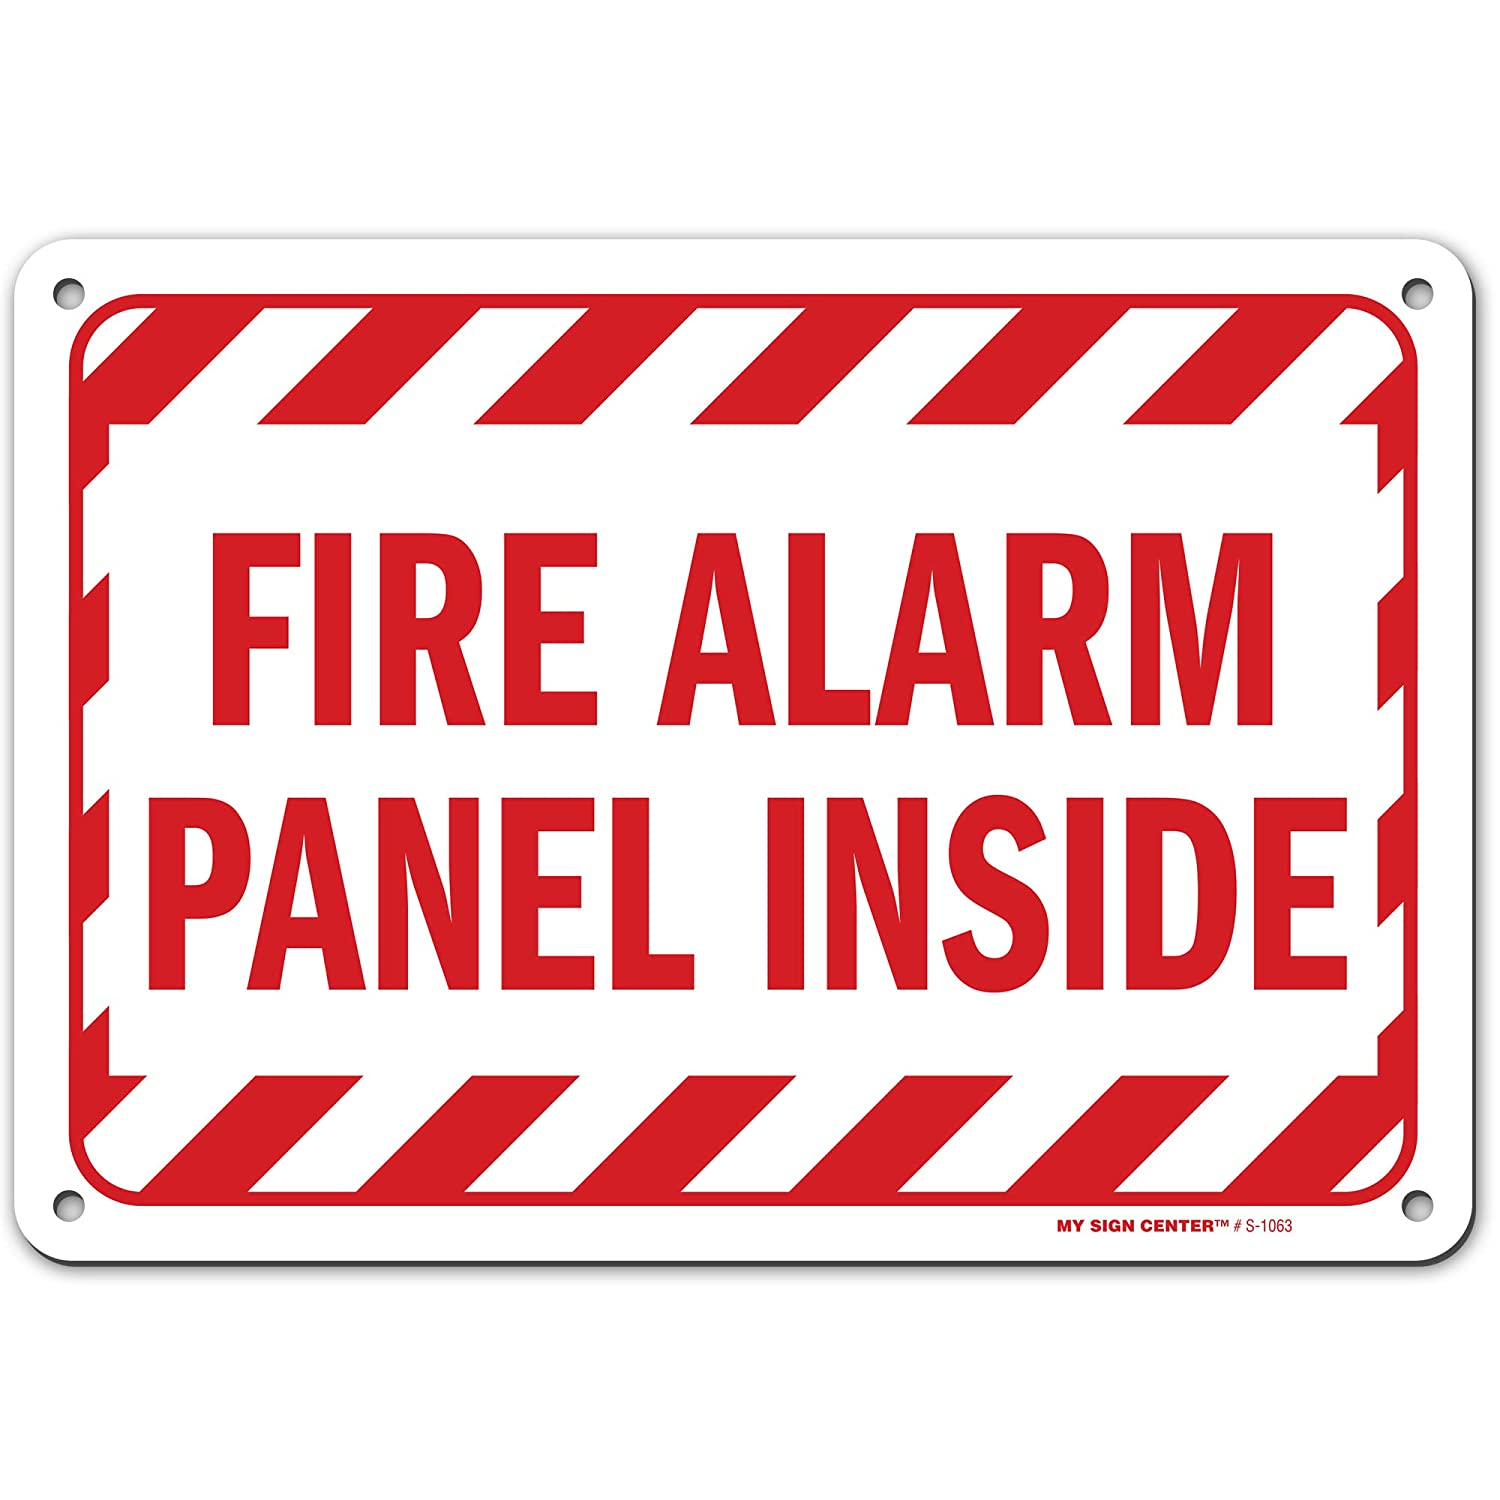 Fire Alarm Panel Inside Sign, Made Out of .040 Rust-Free Aluminum, Indoor/Outdoor Use, UV Protected and Fade-Resistant, 7